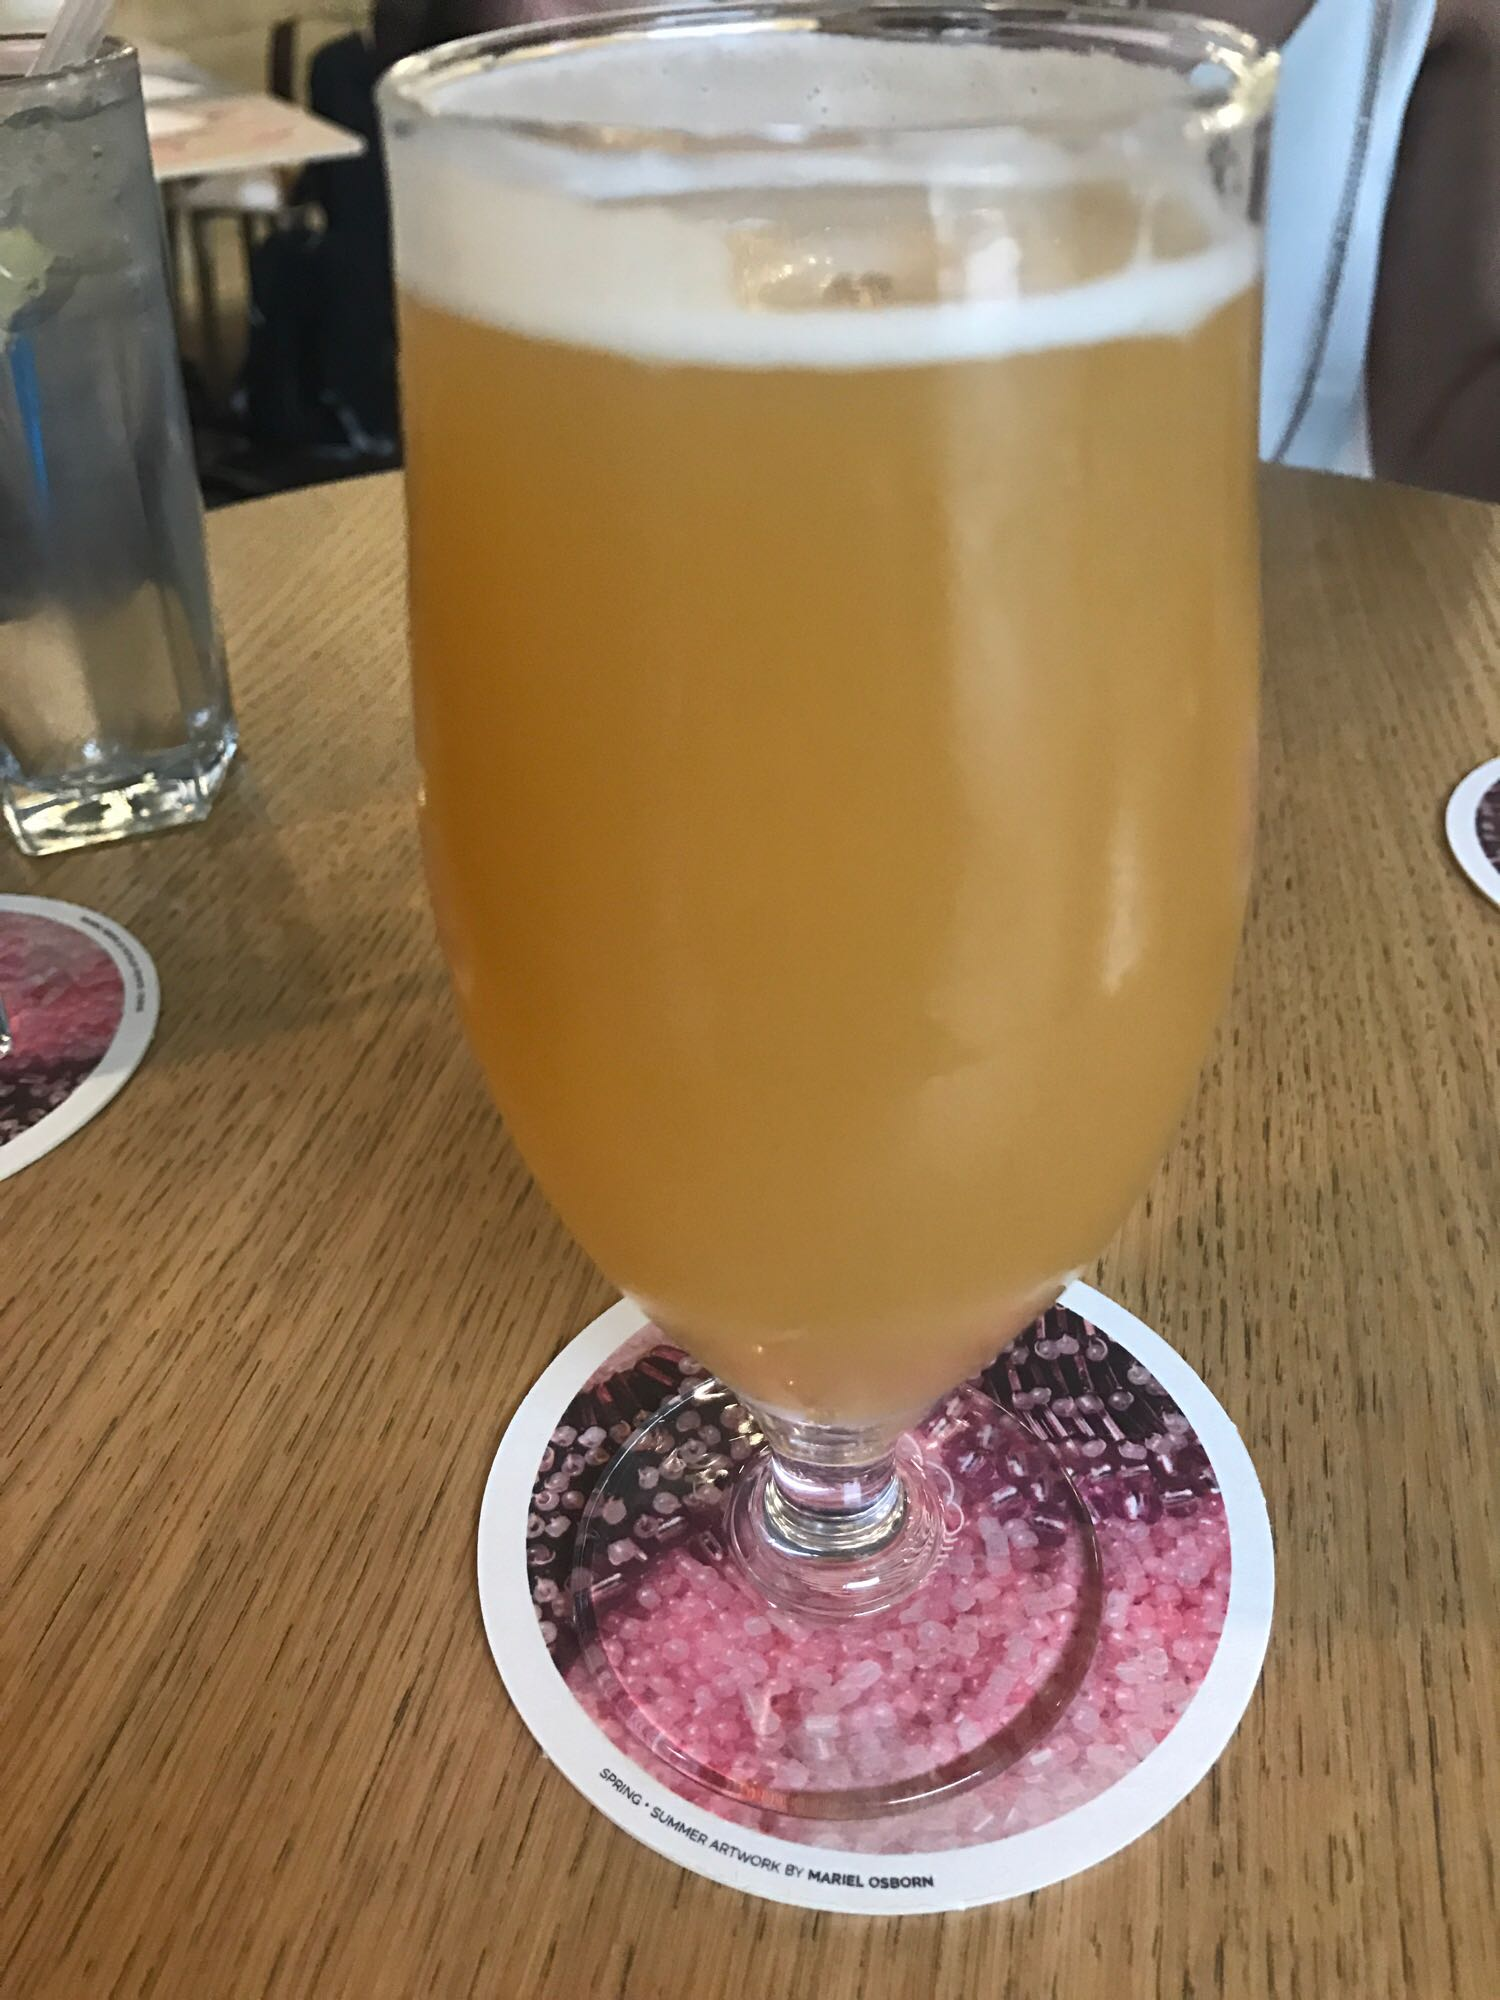 DDH IPA Citra - American IPA 6% // Cloudwater Brew Co. - Here comes my favourite beer from our visit to the Tate Modern for the Cloudwater Tap Takeover . Pretty much alcoholic fruit juice, this was dangerously drinkable and went down extremely easily. There was a surprising watermelon-esque aftertaste that made me actually say 'wow' as I didn't expect it but once it had settled, I couldn't stop drinking it. The perfect beer for a summer's evening. I may have had three of these.